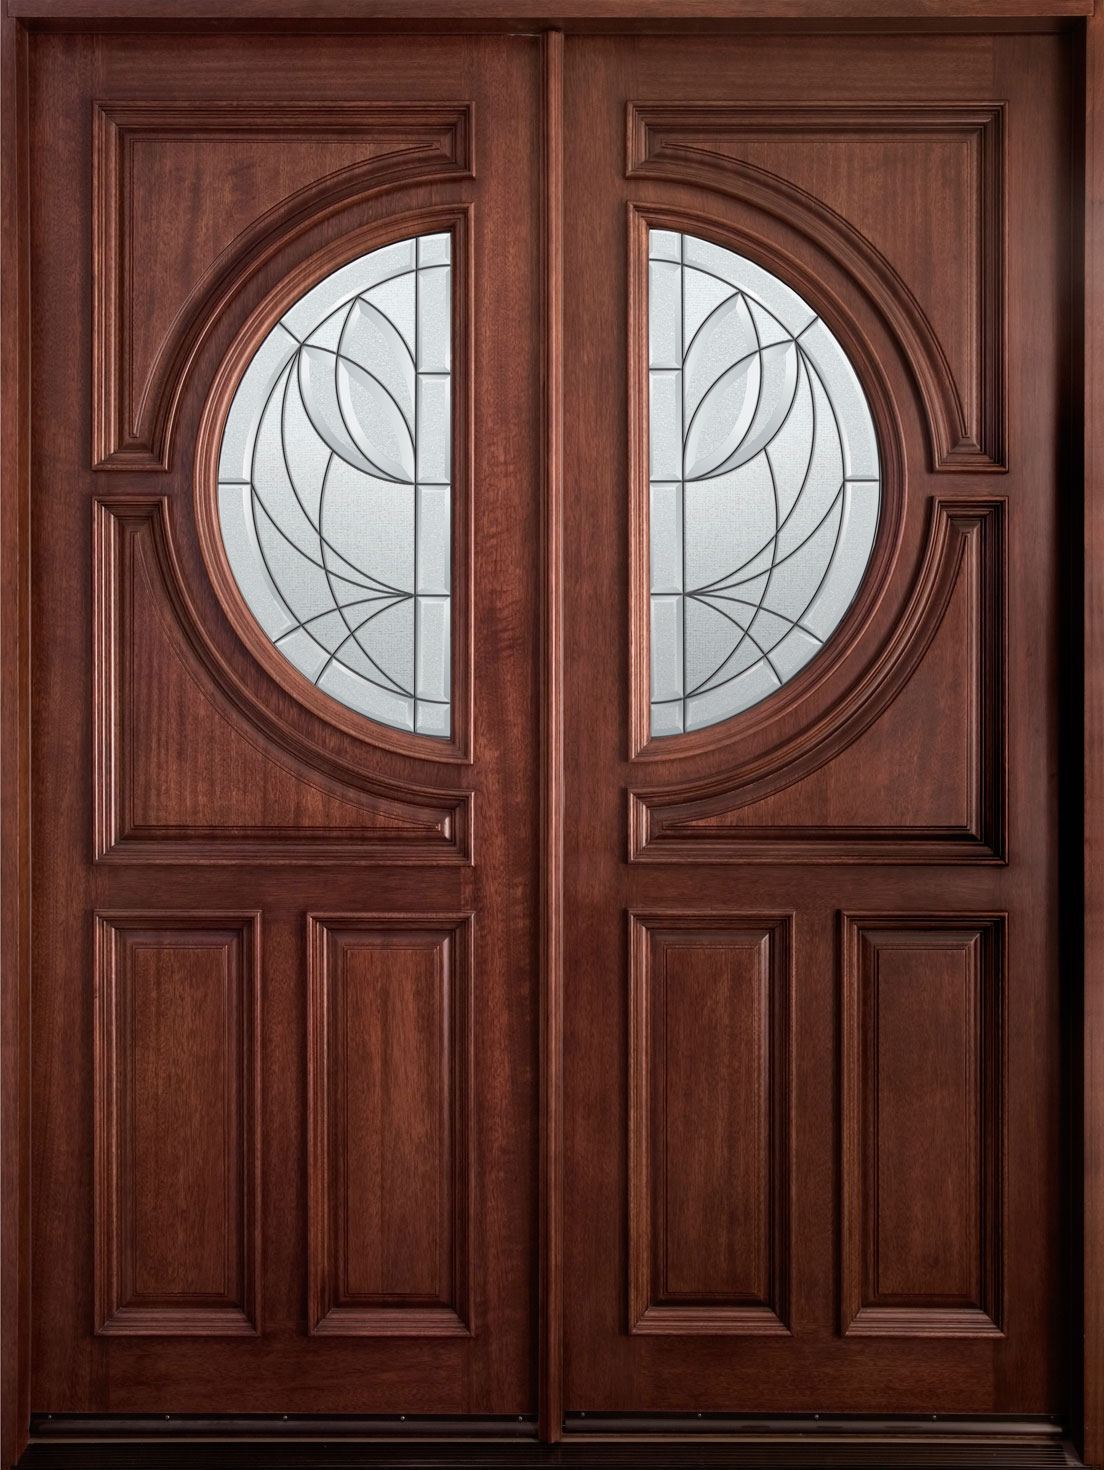 Wooden double door clipart.